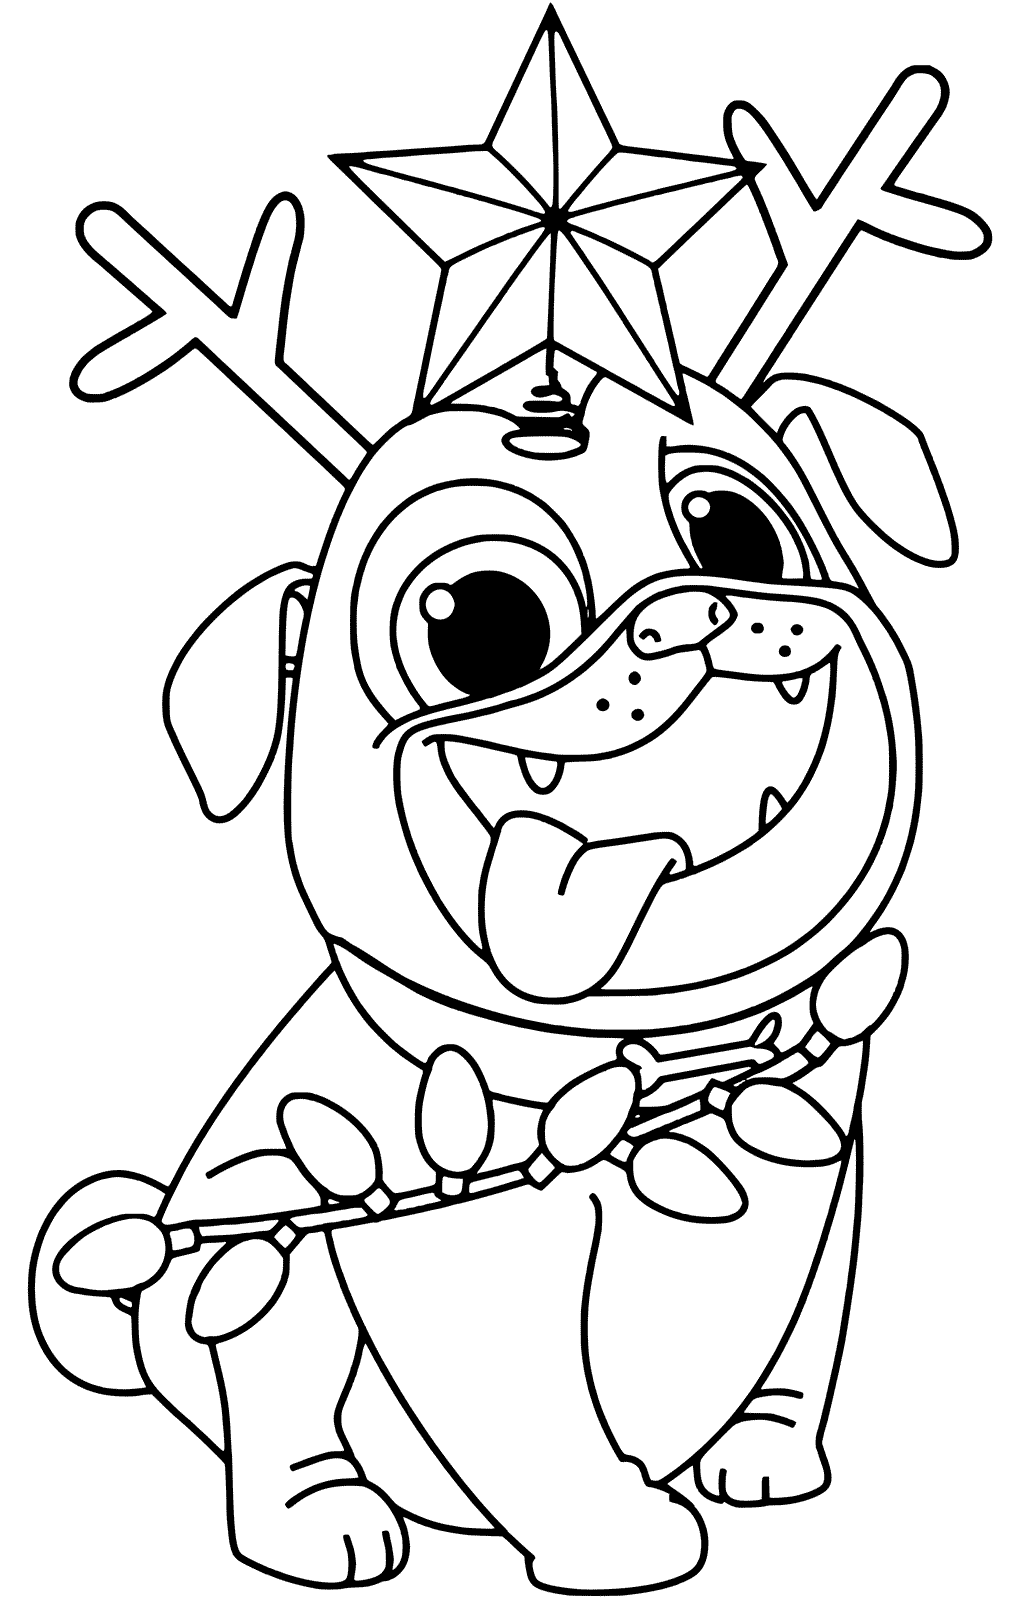 colouring pages of dog dog coloring page for kids free stock photo public of dog pages colouring